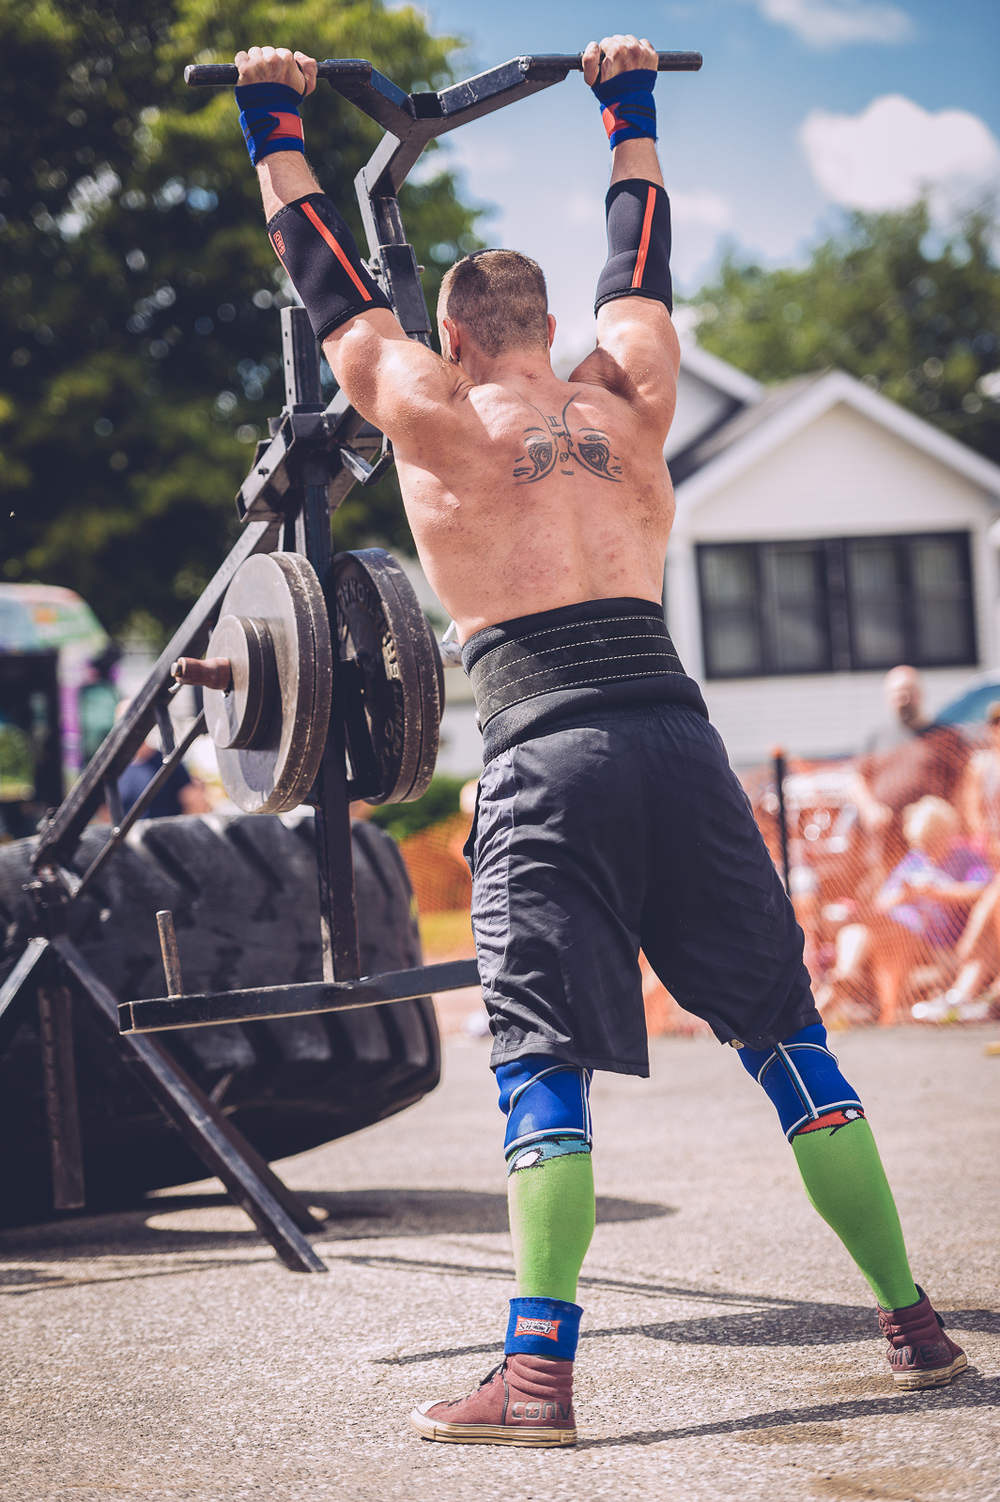 strongman_2015_blog42.jpg